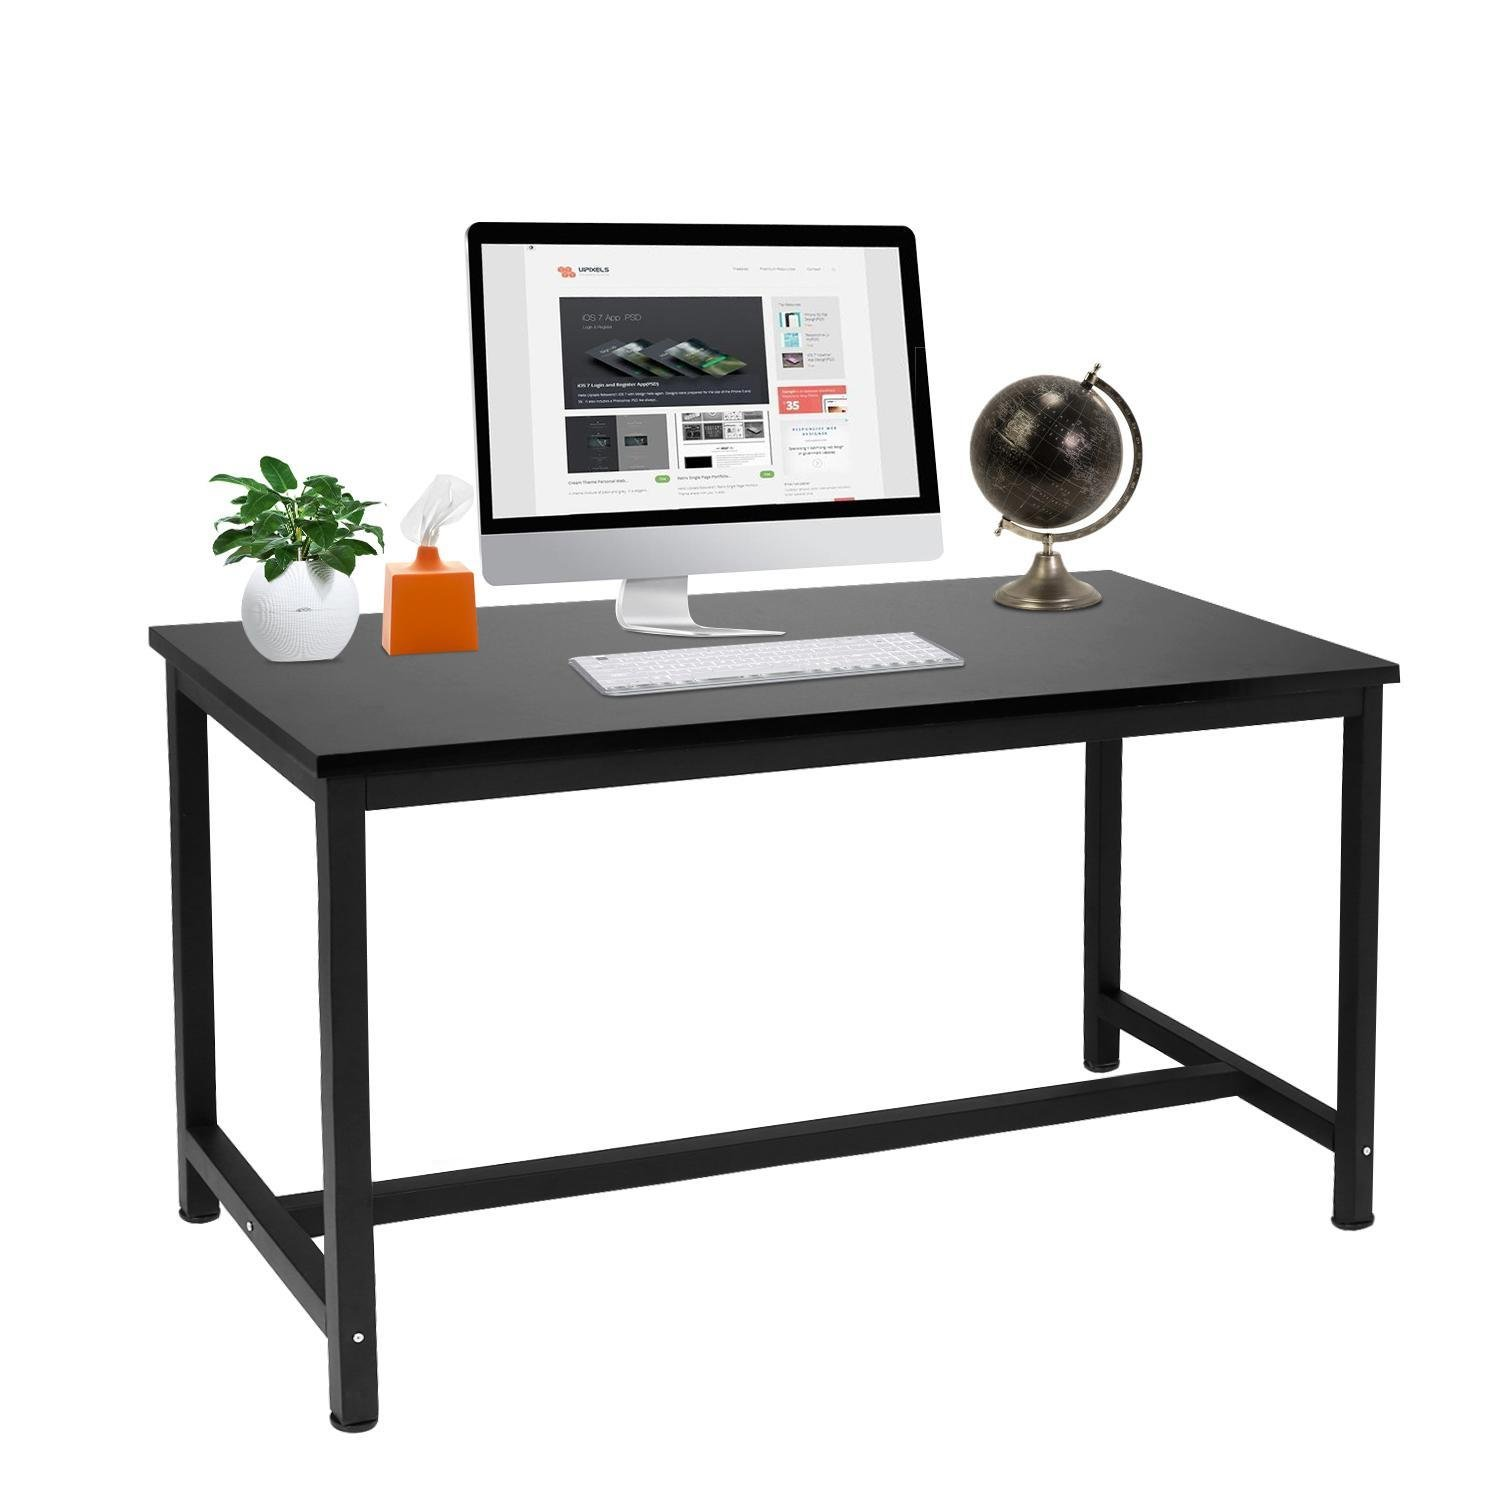 Amazon com stable durable home office desk table large space mdf workstation desk for computer monitor printer 54 6 x 23 4 x 29 6inch black kitchen